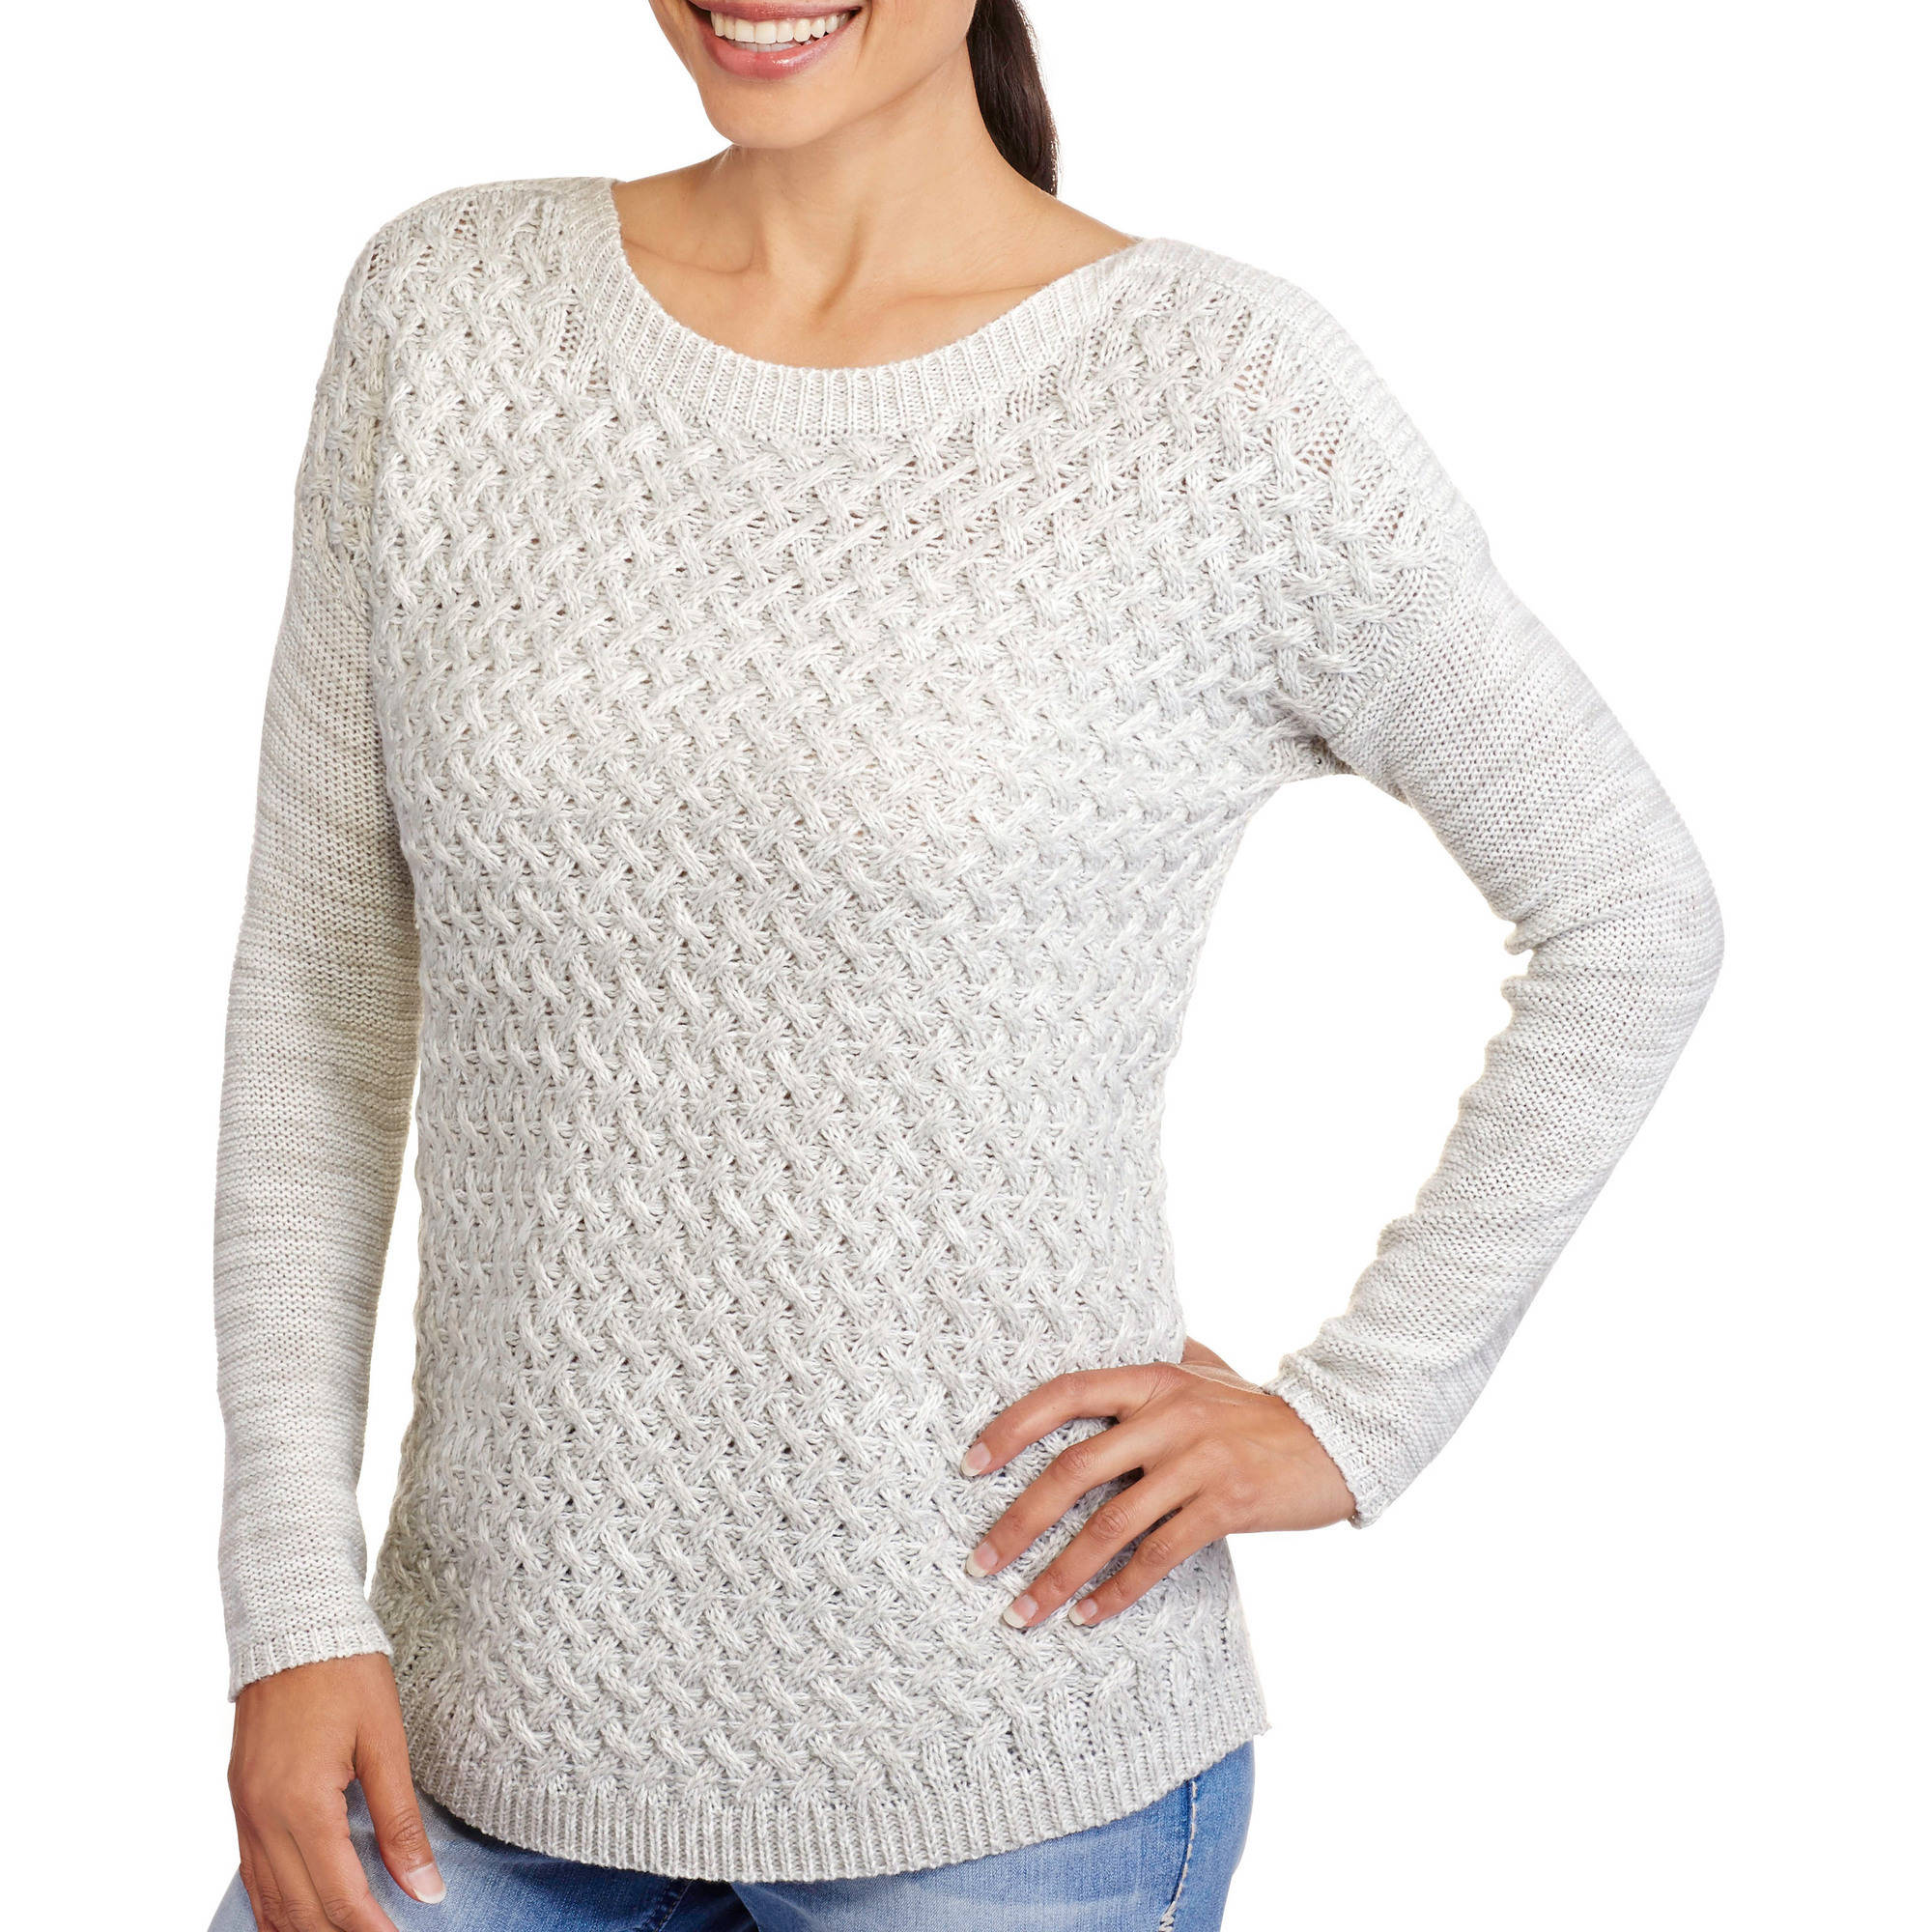 Women's Drop Shoulder Textured Crew Neck Sweater